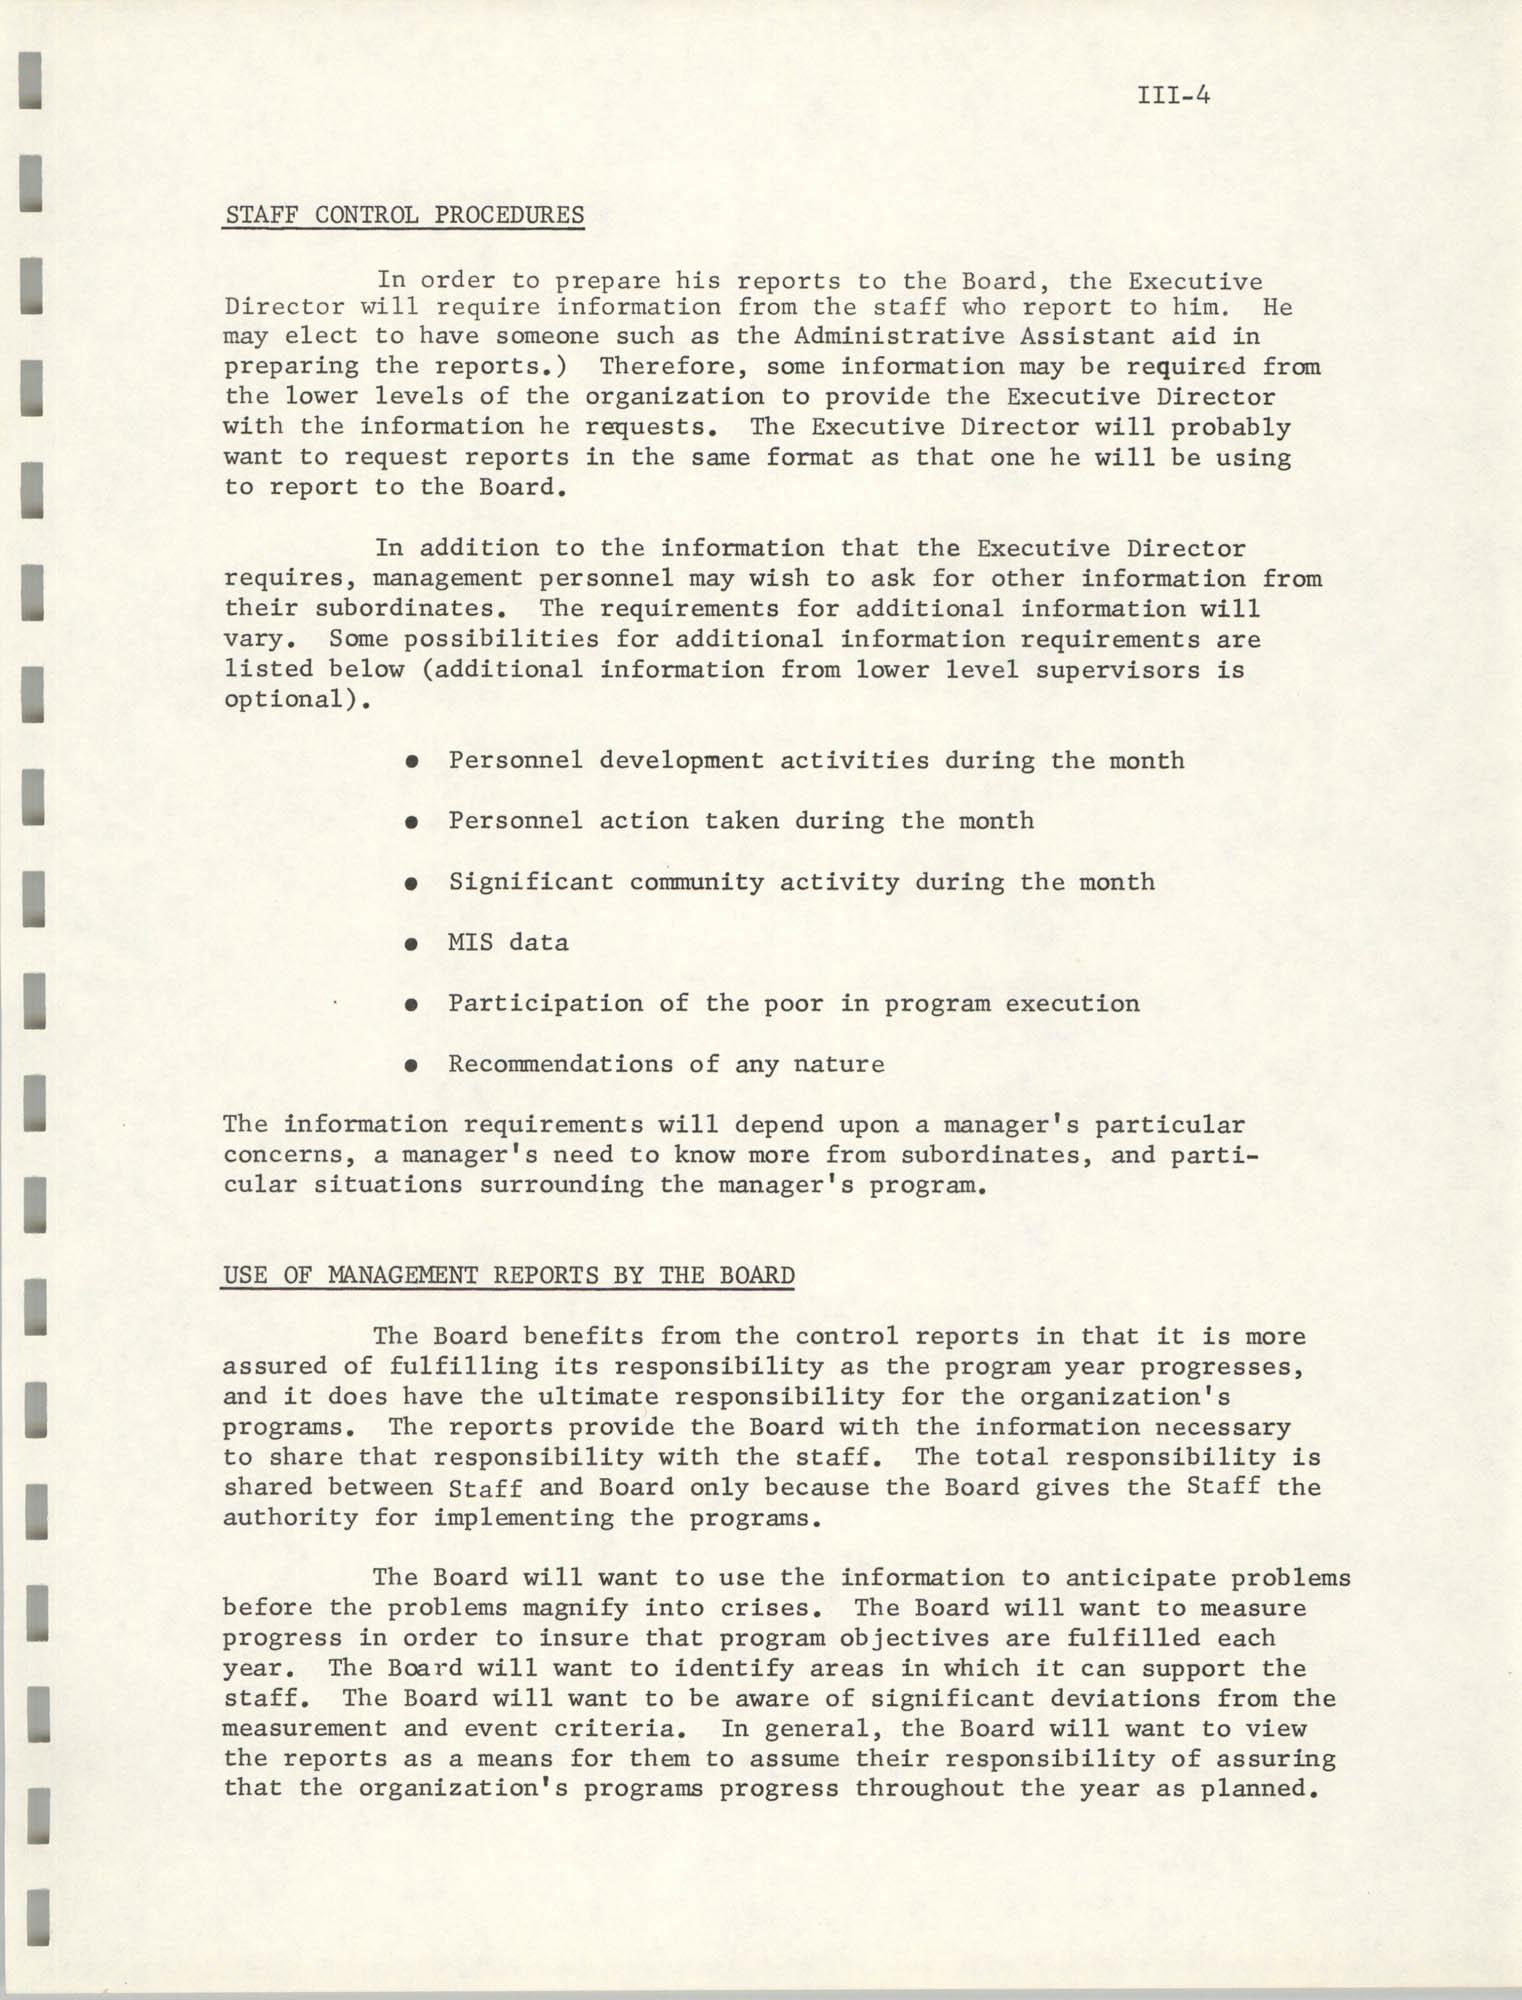 Program Planning and Control Procedures Guide for South Carolina Commission for Farm Workers, Inc., Page III-4